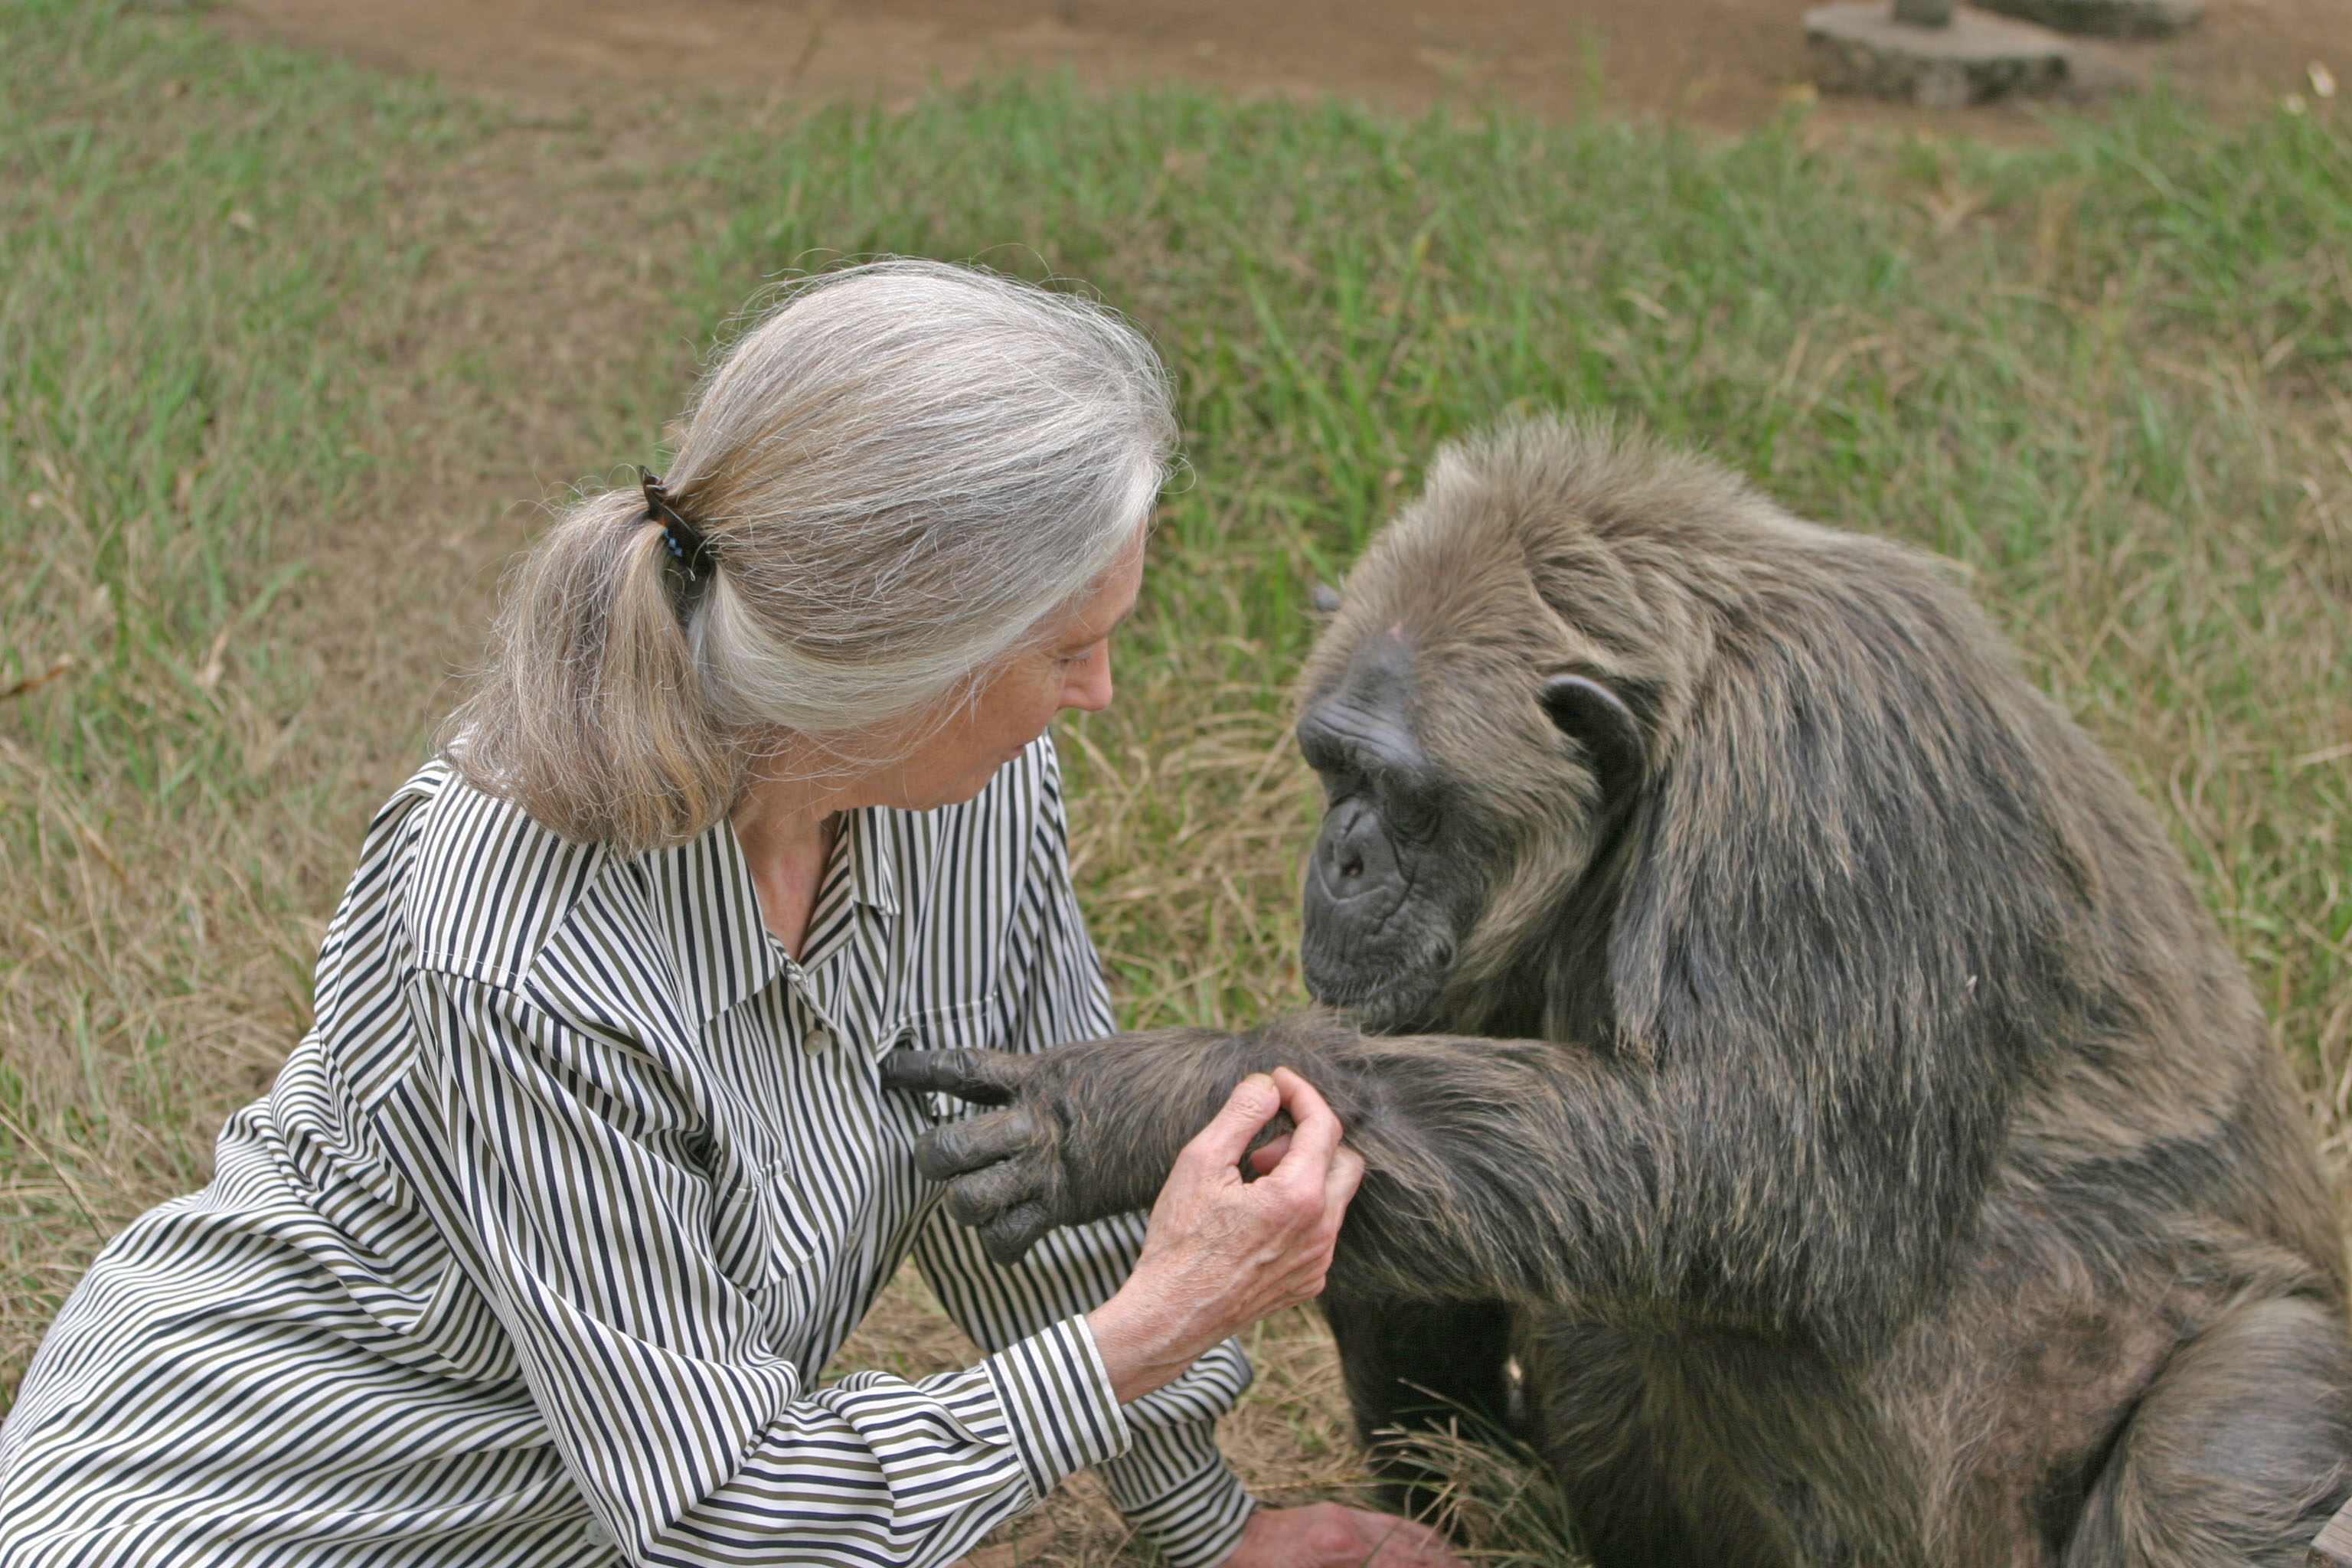 Remembering La Vieille : Mother to Orphaned Chimps